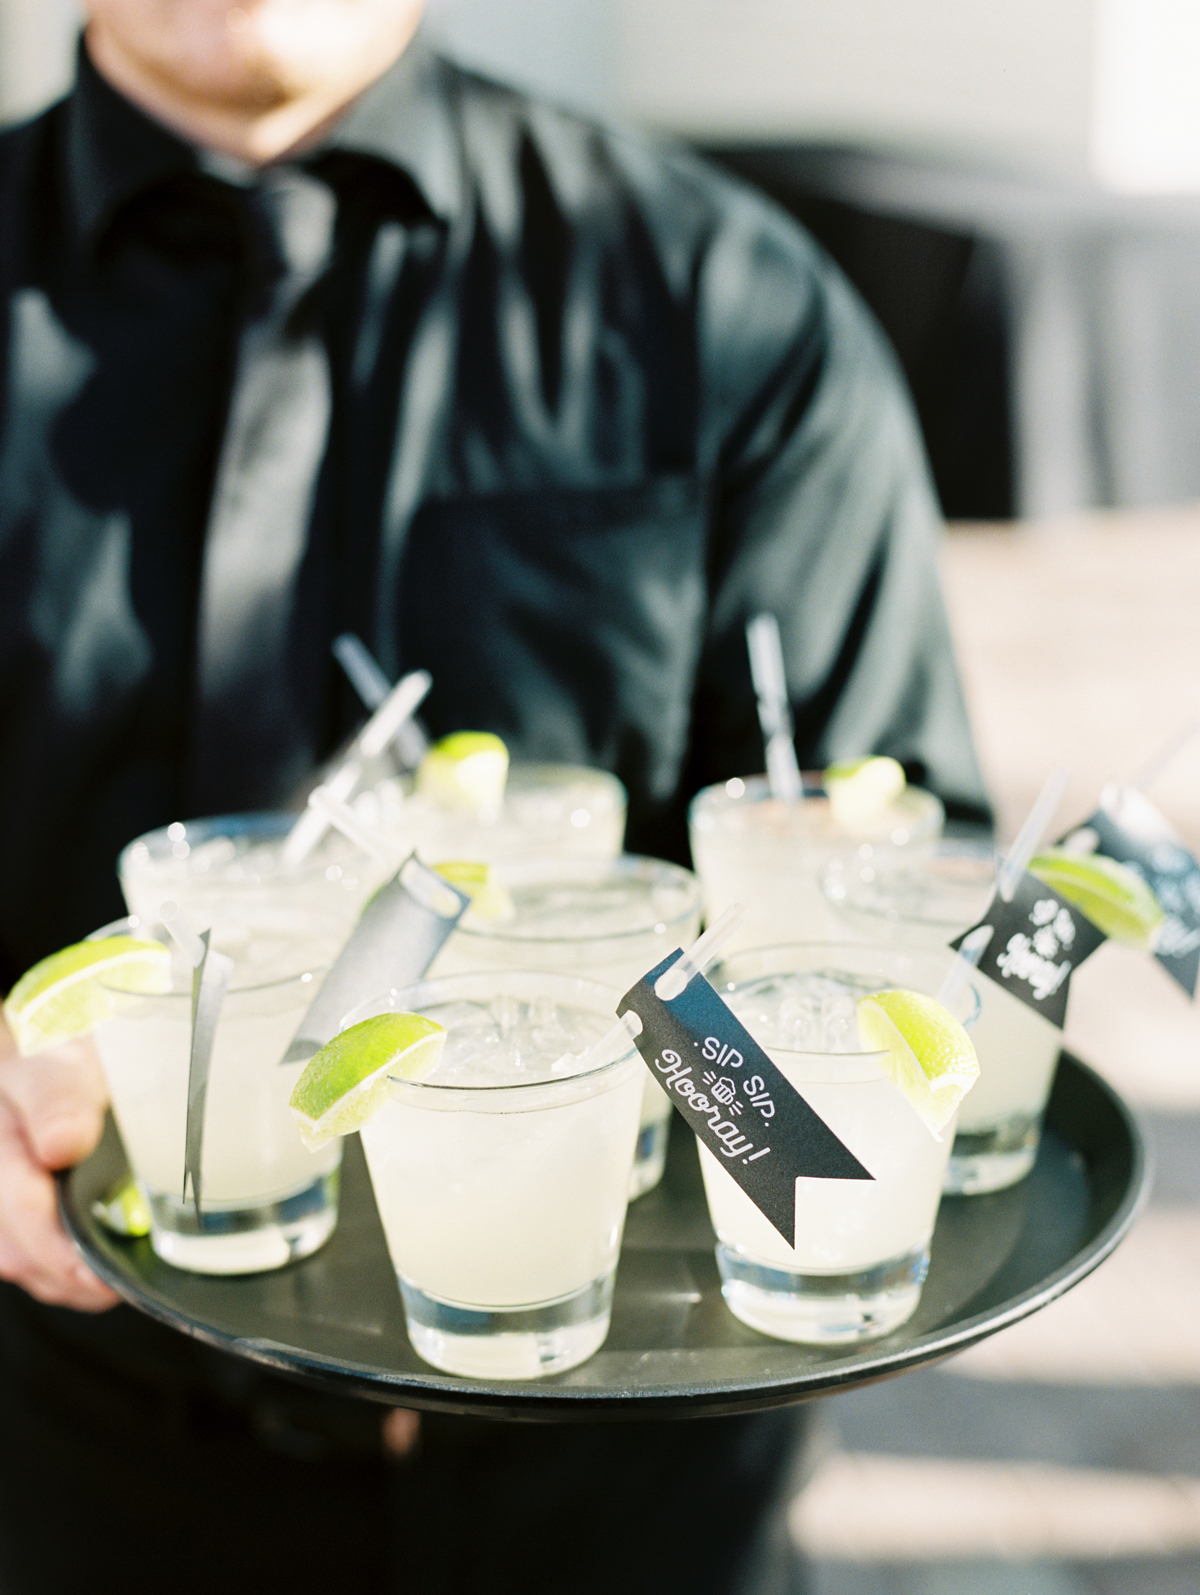 Moscow Mule cocktails on serving tray